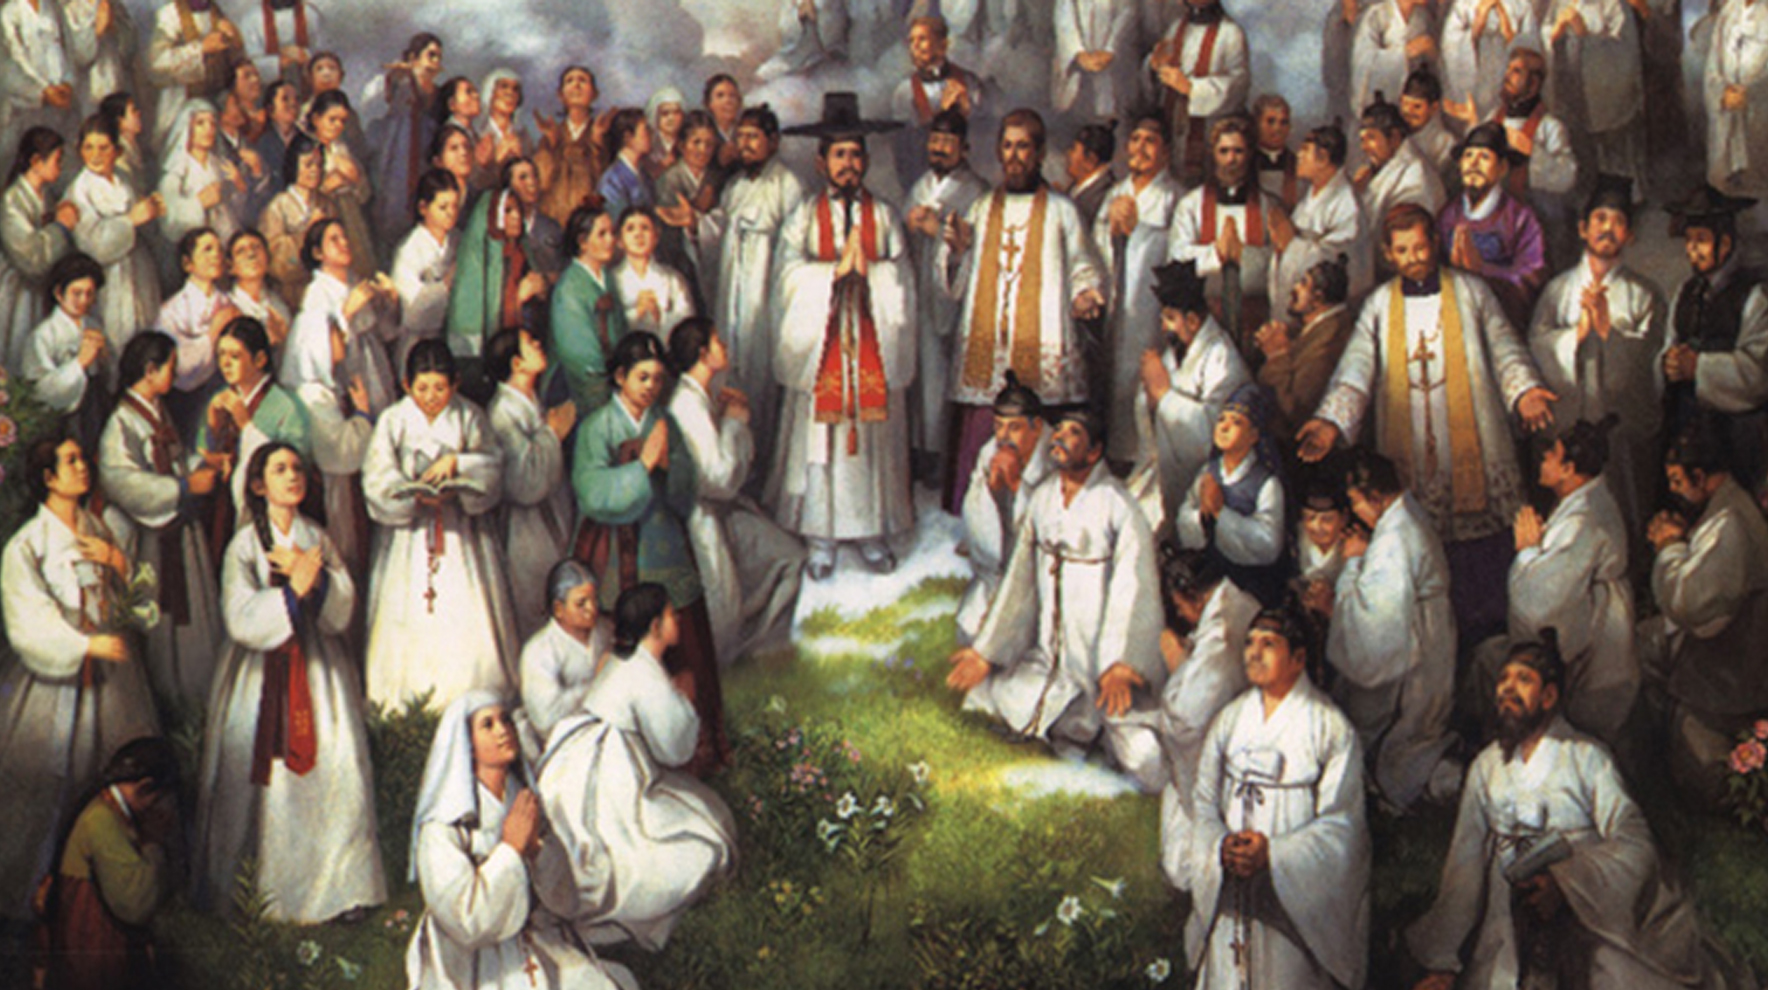 HOMILY FOR MONDAY 25TH WEEK IN ORDINARY TIME, YEAR I, (Memorial of St. Andrew Kim Taegon and Comp.